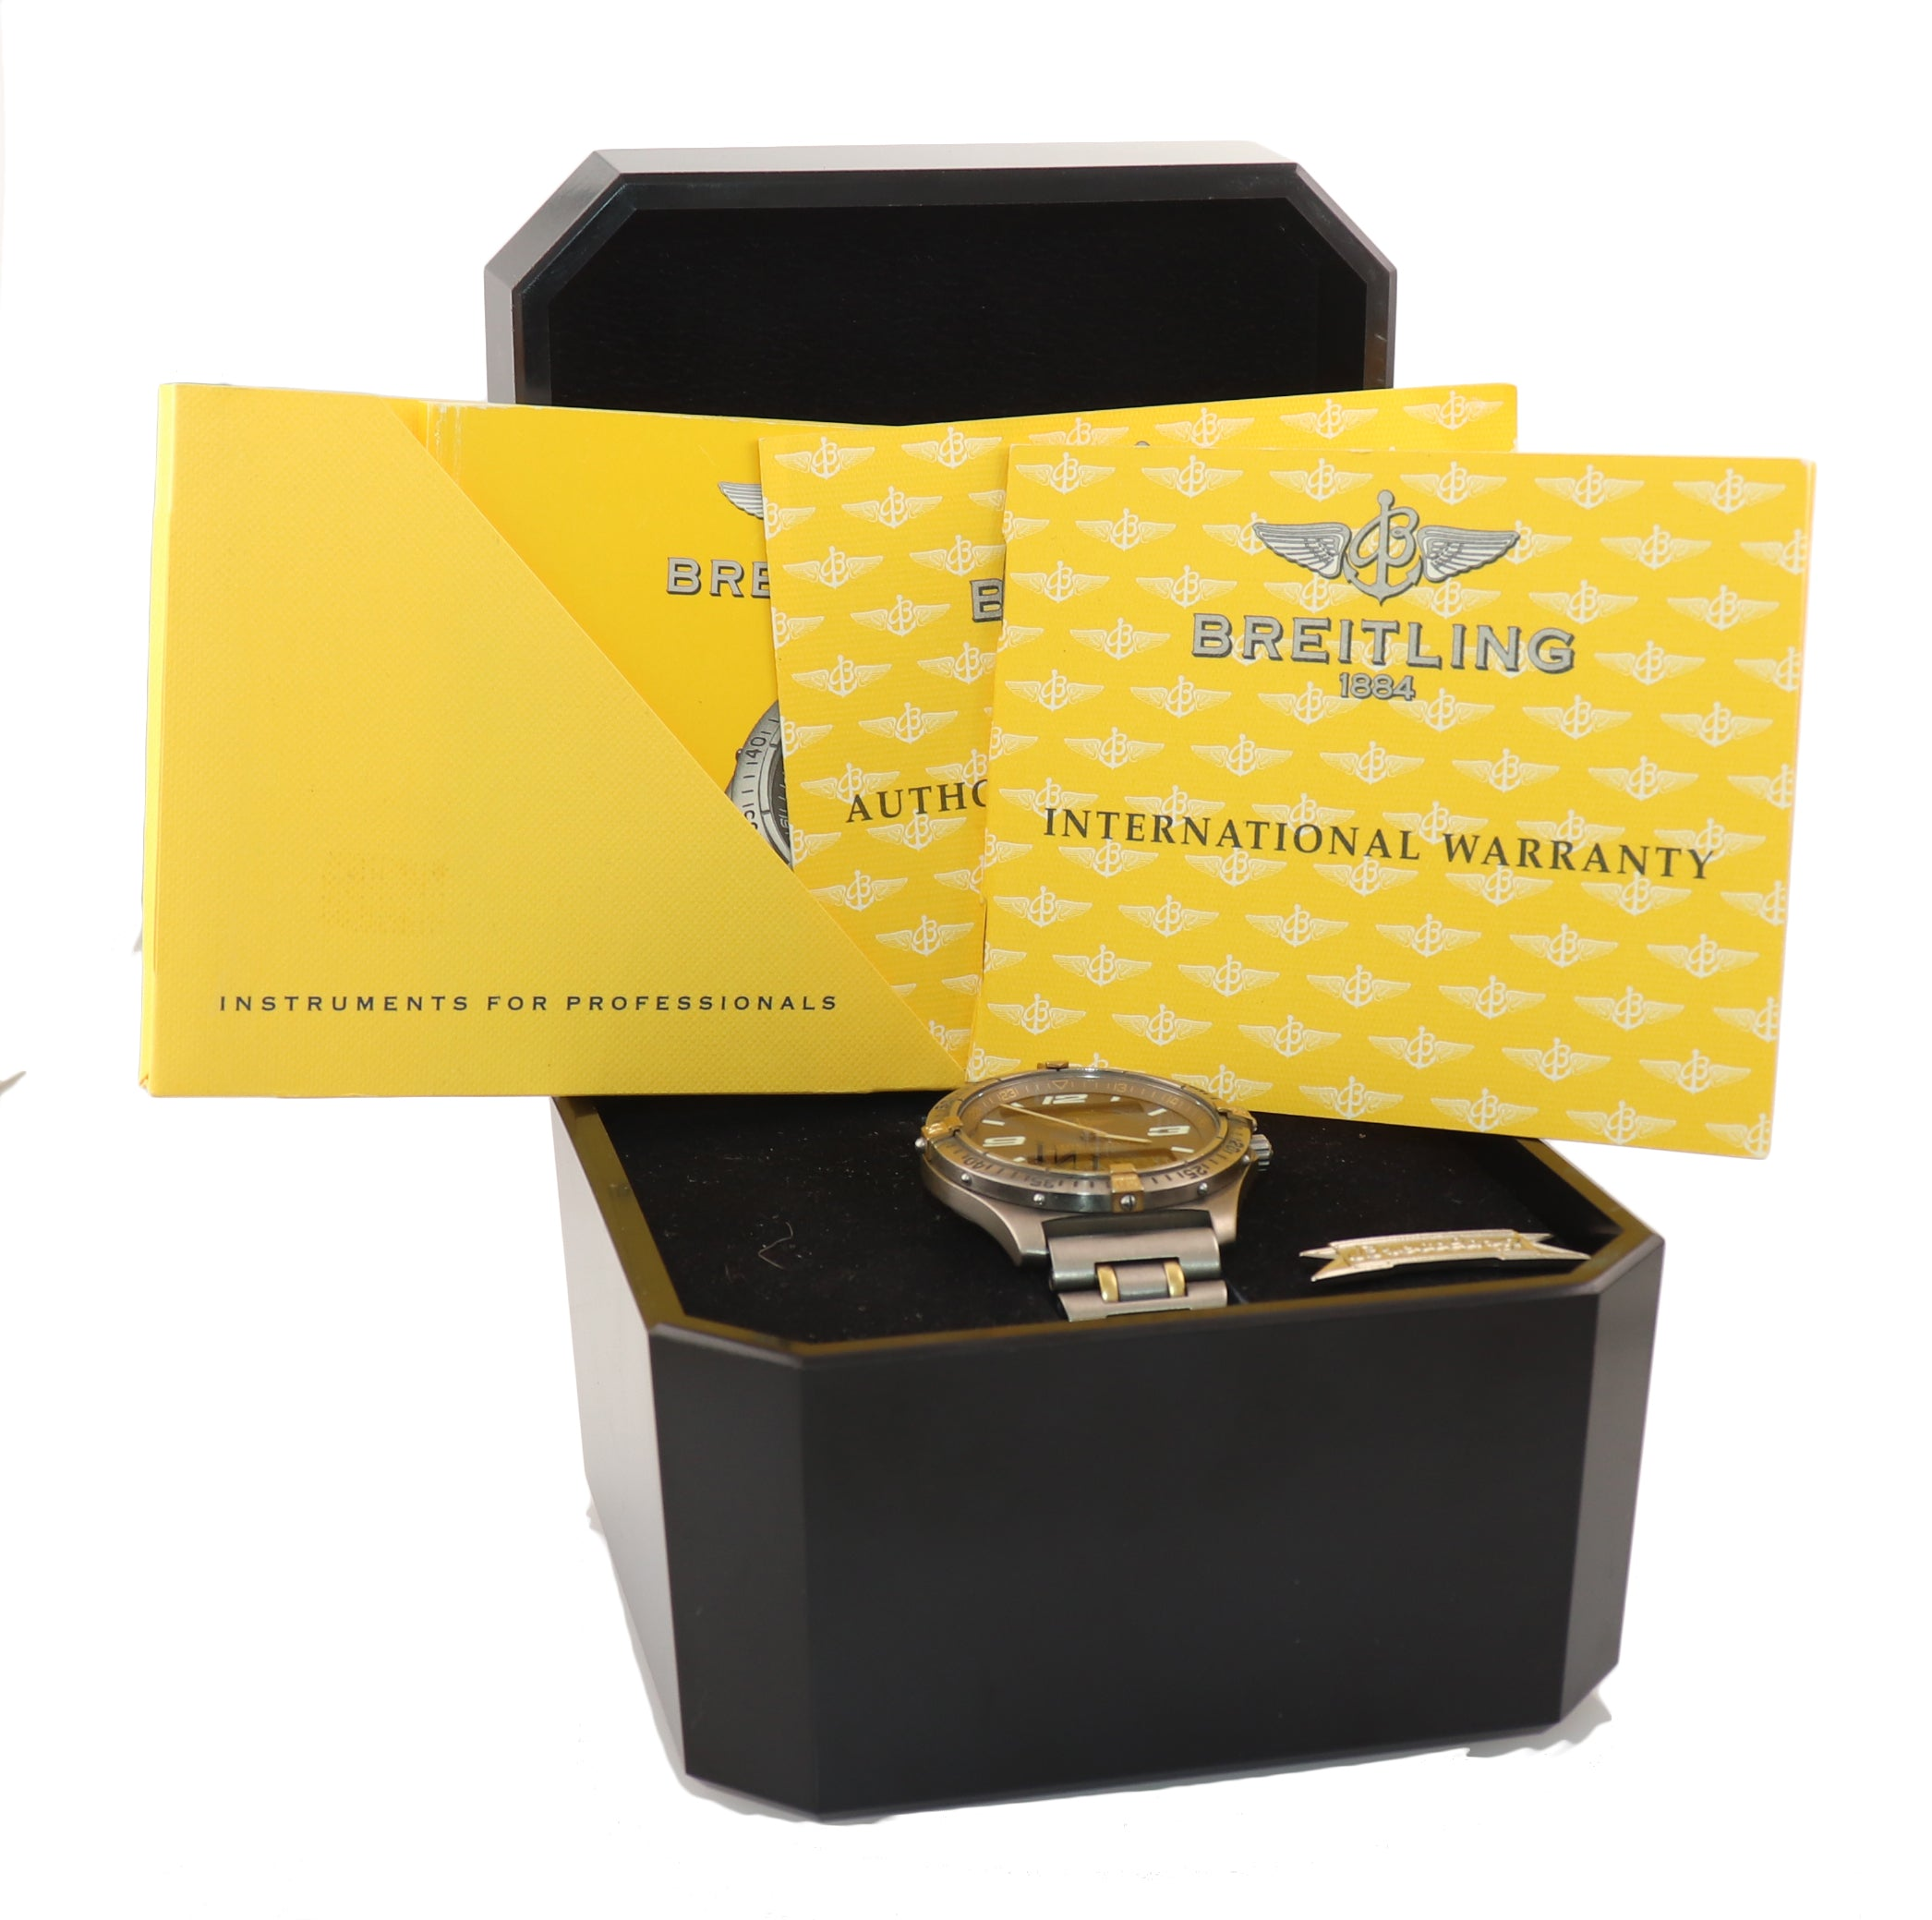 PAPERS Breitling Aerospace Titanium F65362 Grey 40mm Two Tone Gold Watch Box